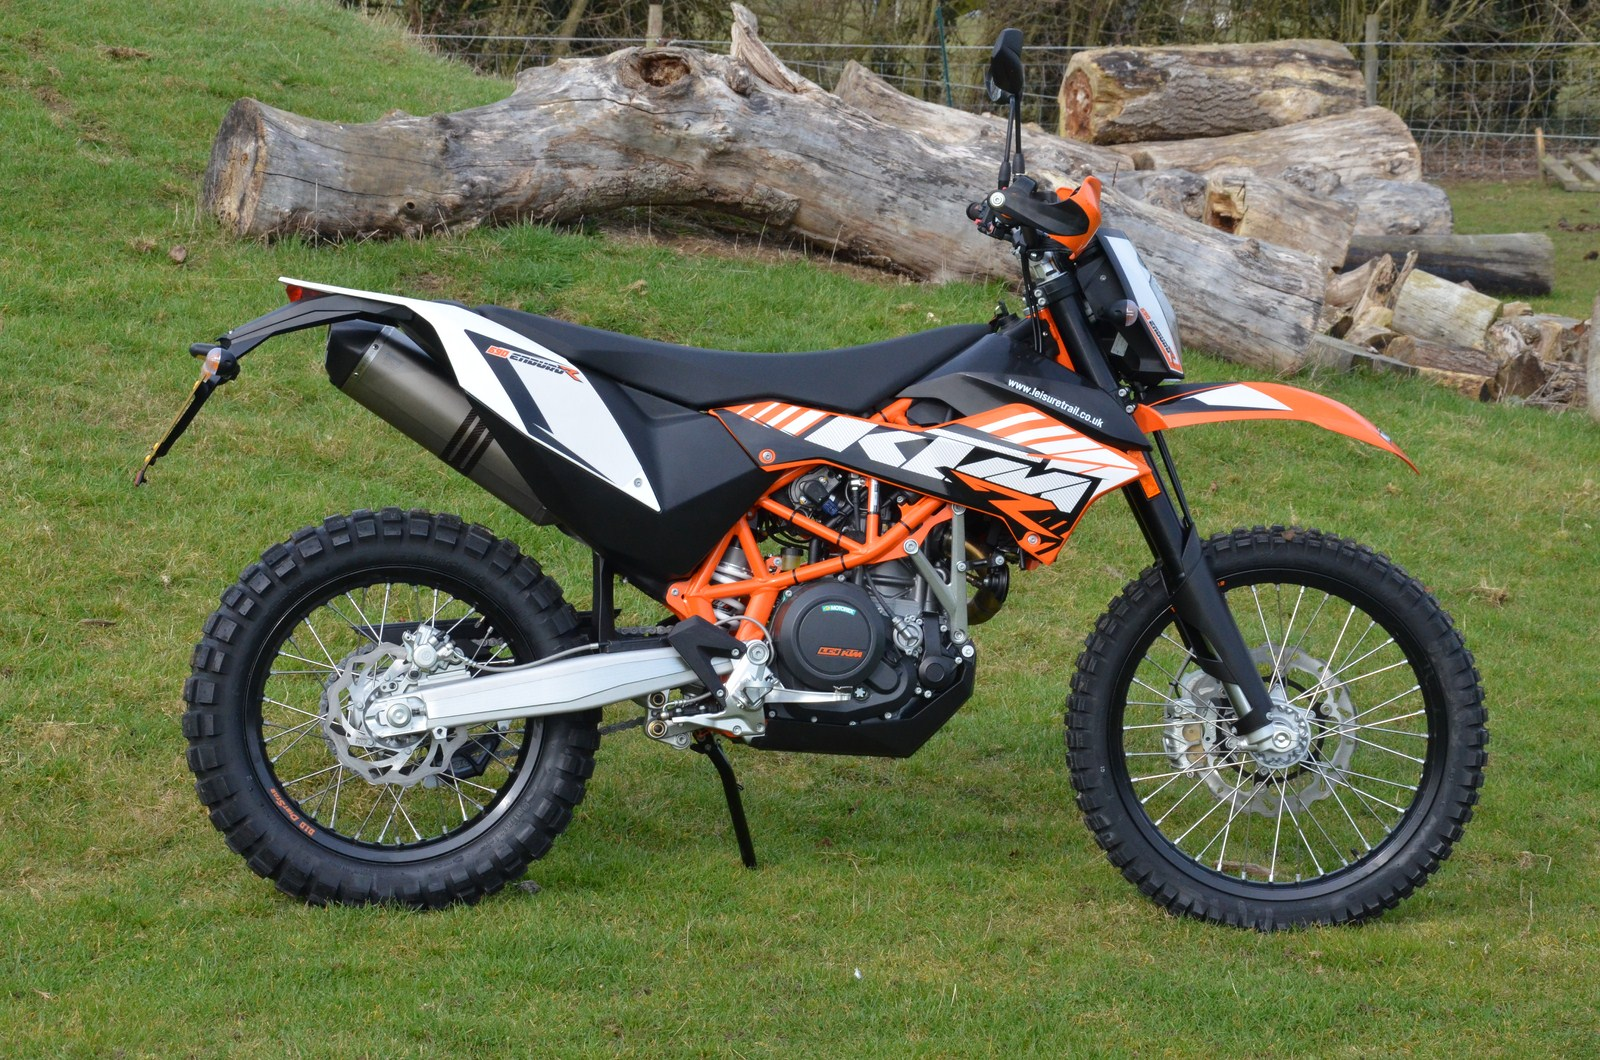 ktm ktm 690 enduro r moto zombdrive com. Black Bedroom Furniture Sets. Home Design Ideas